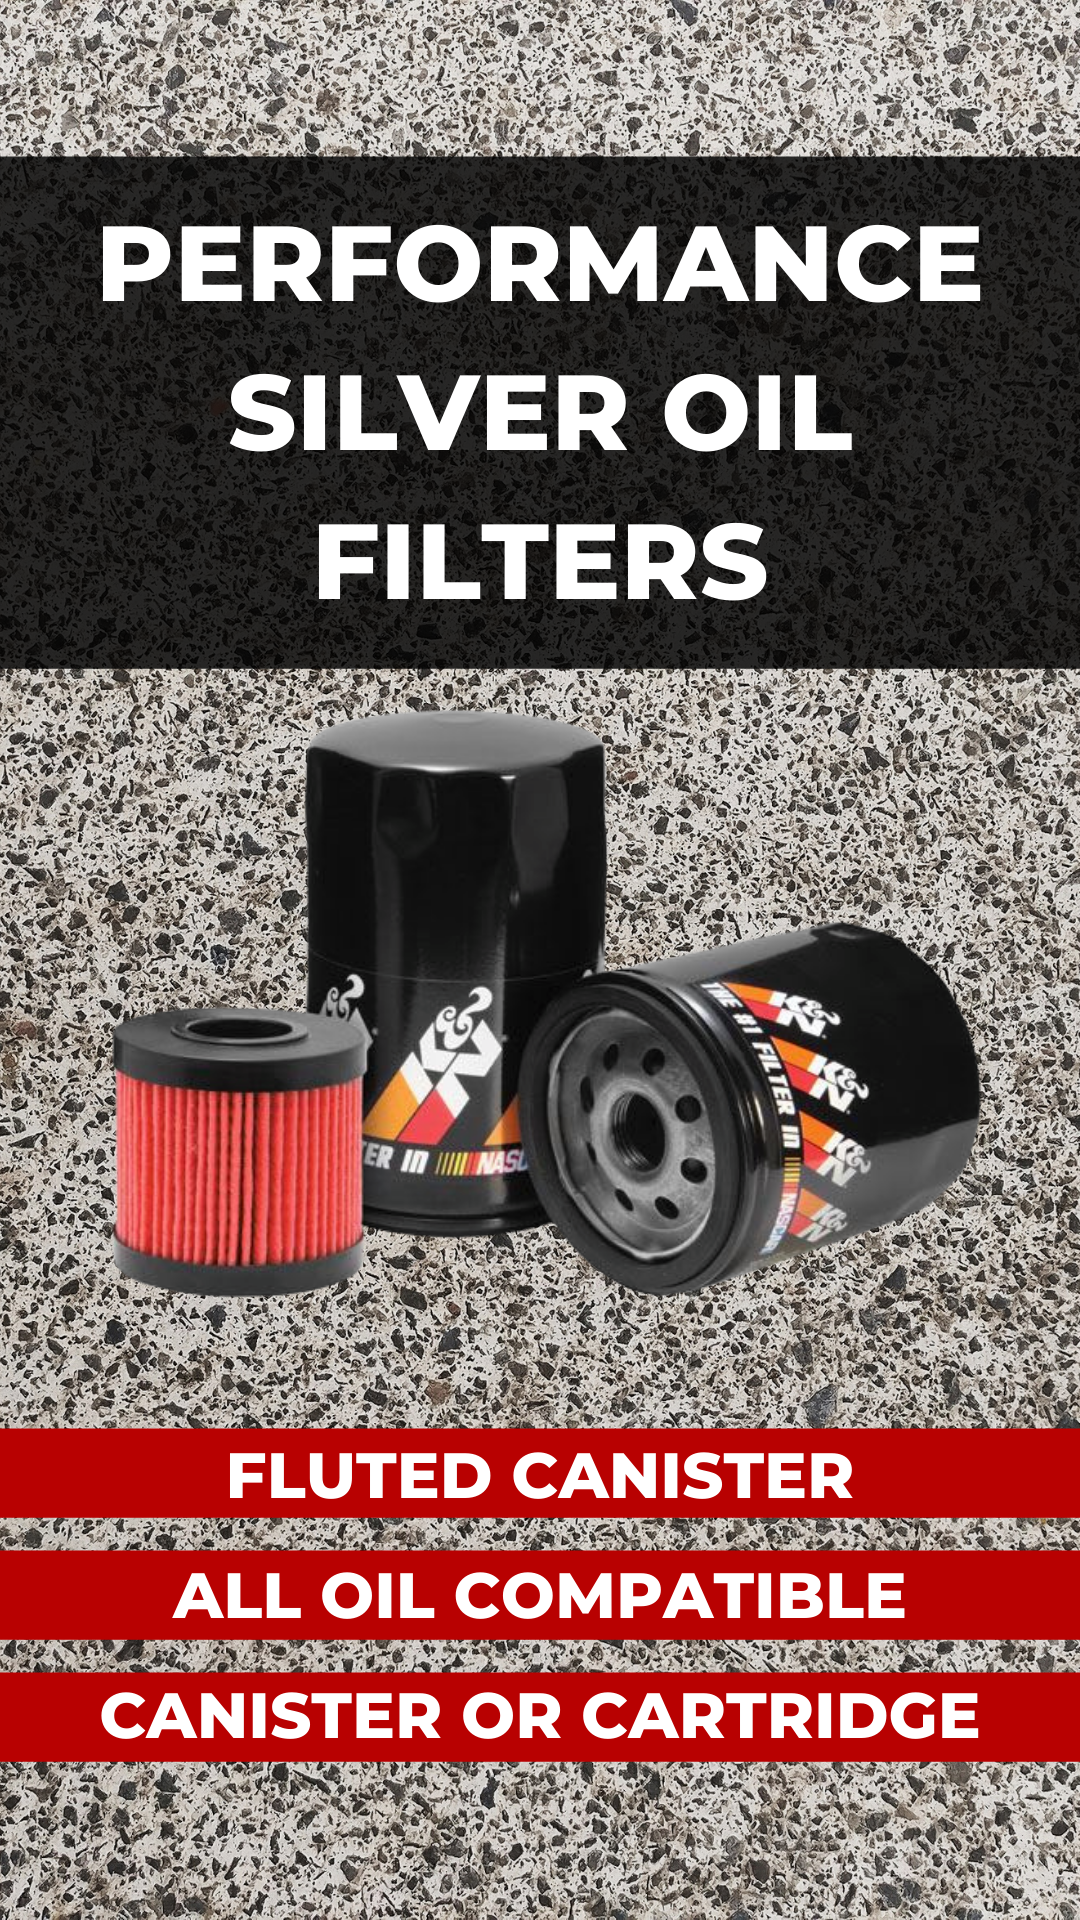 Performance Silver Oil Filters in 2020 Oil filter